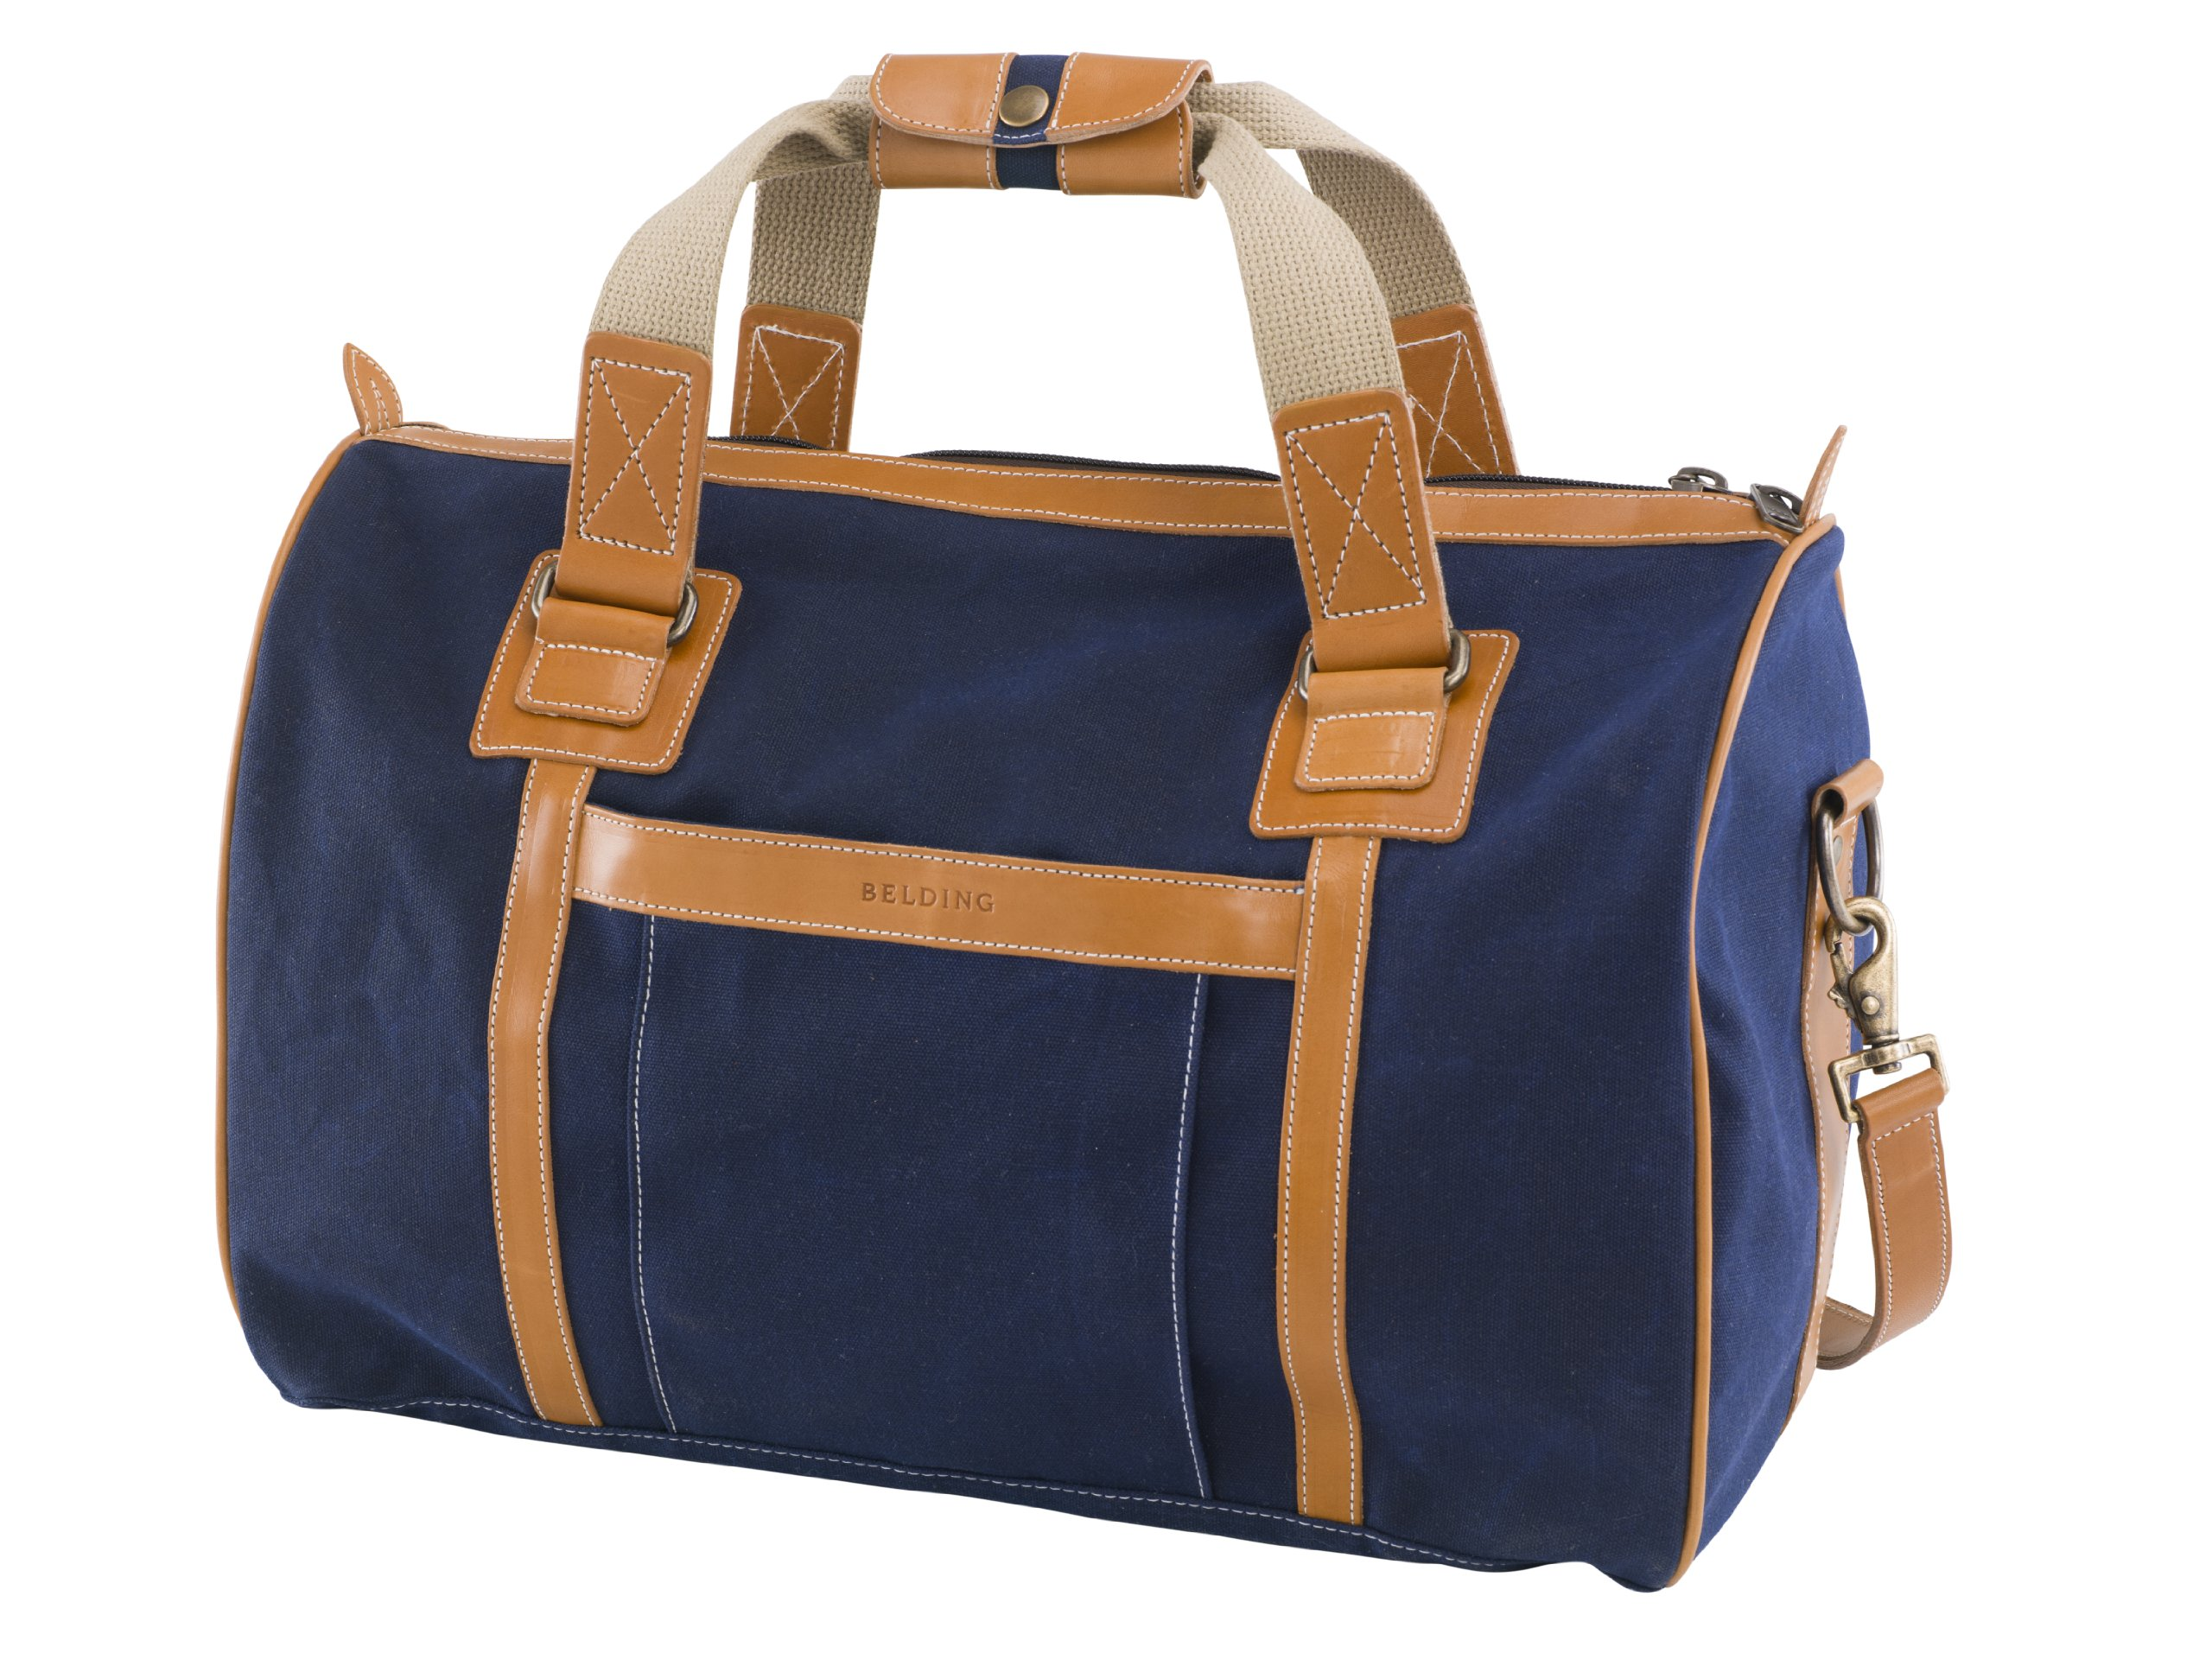 BELDING American Collection Flight Bag, Navy